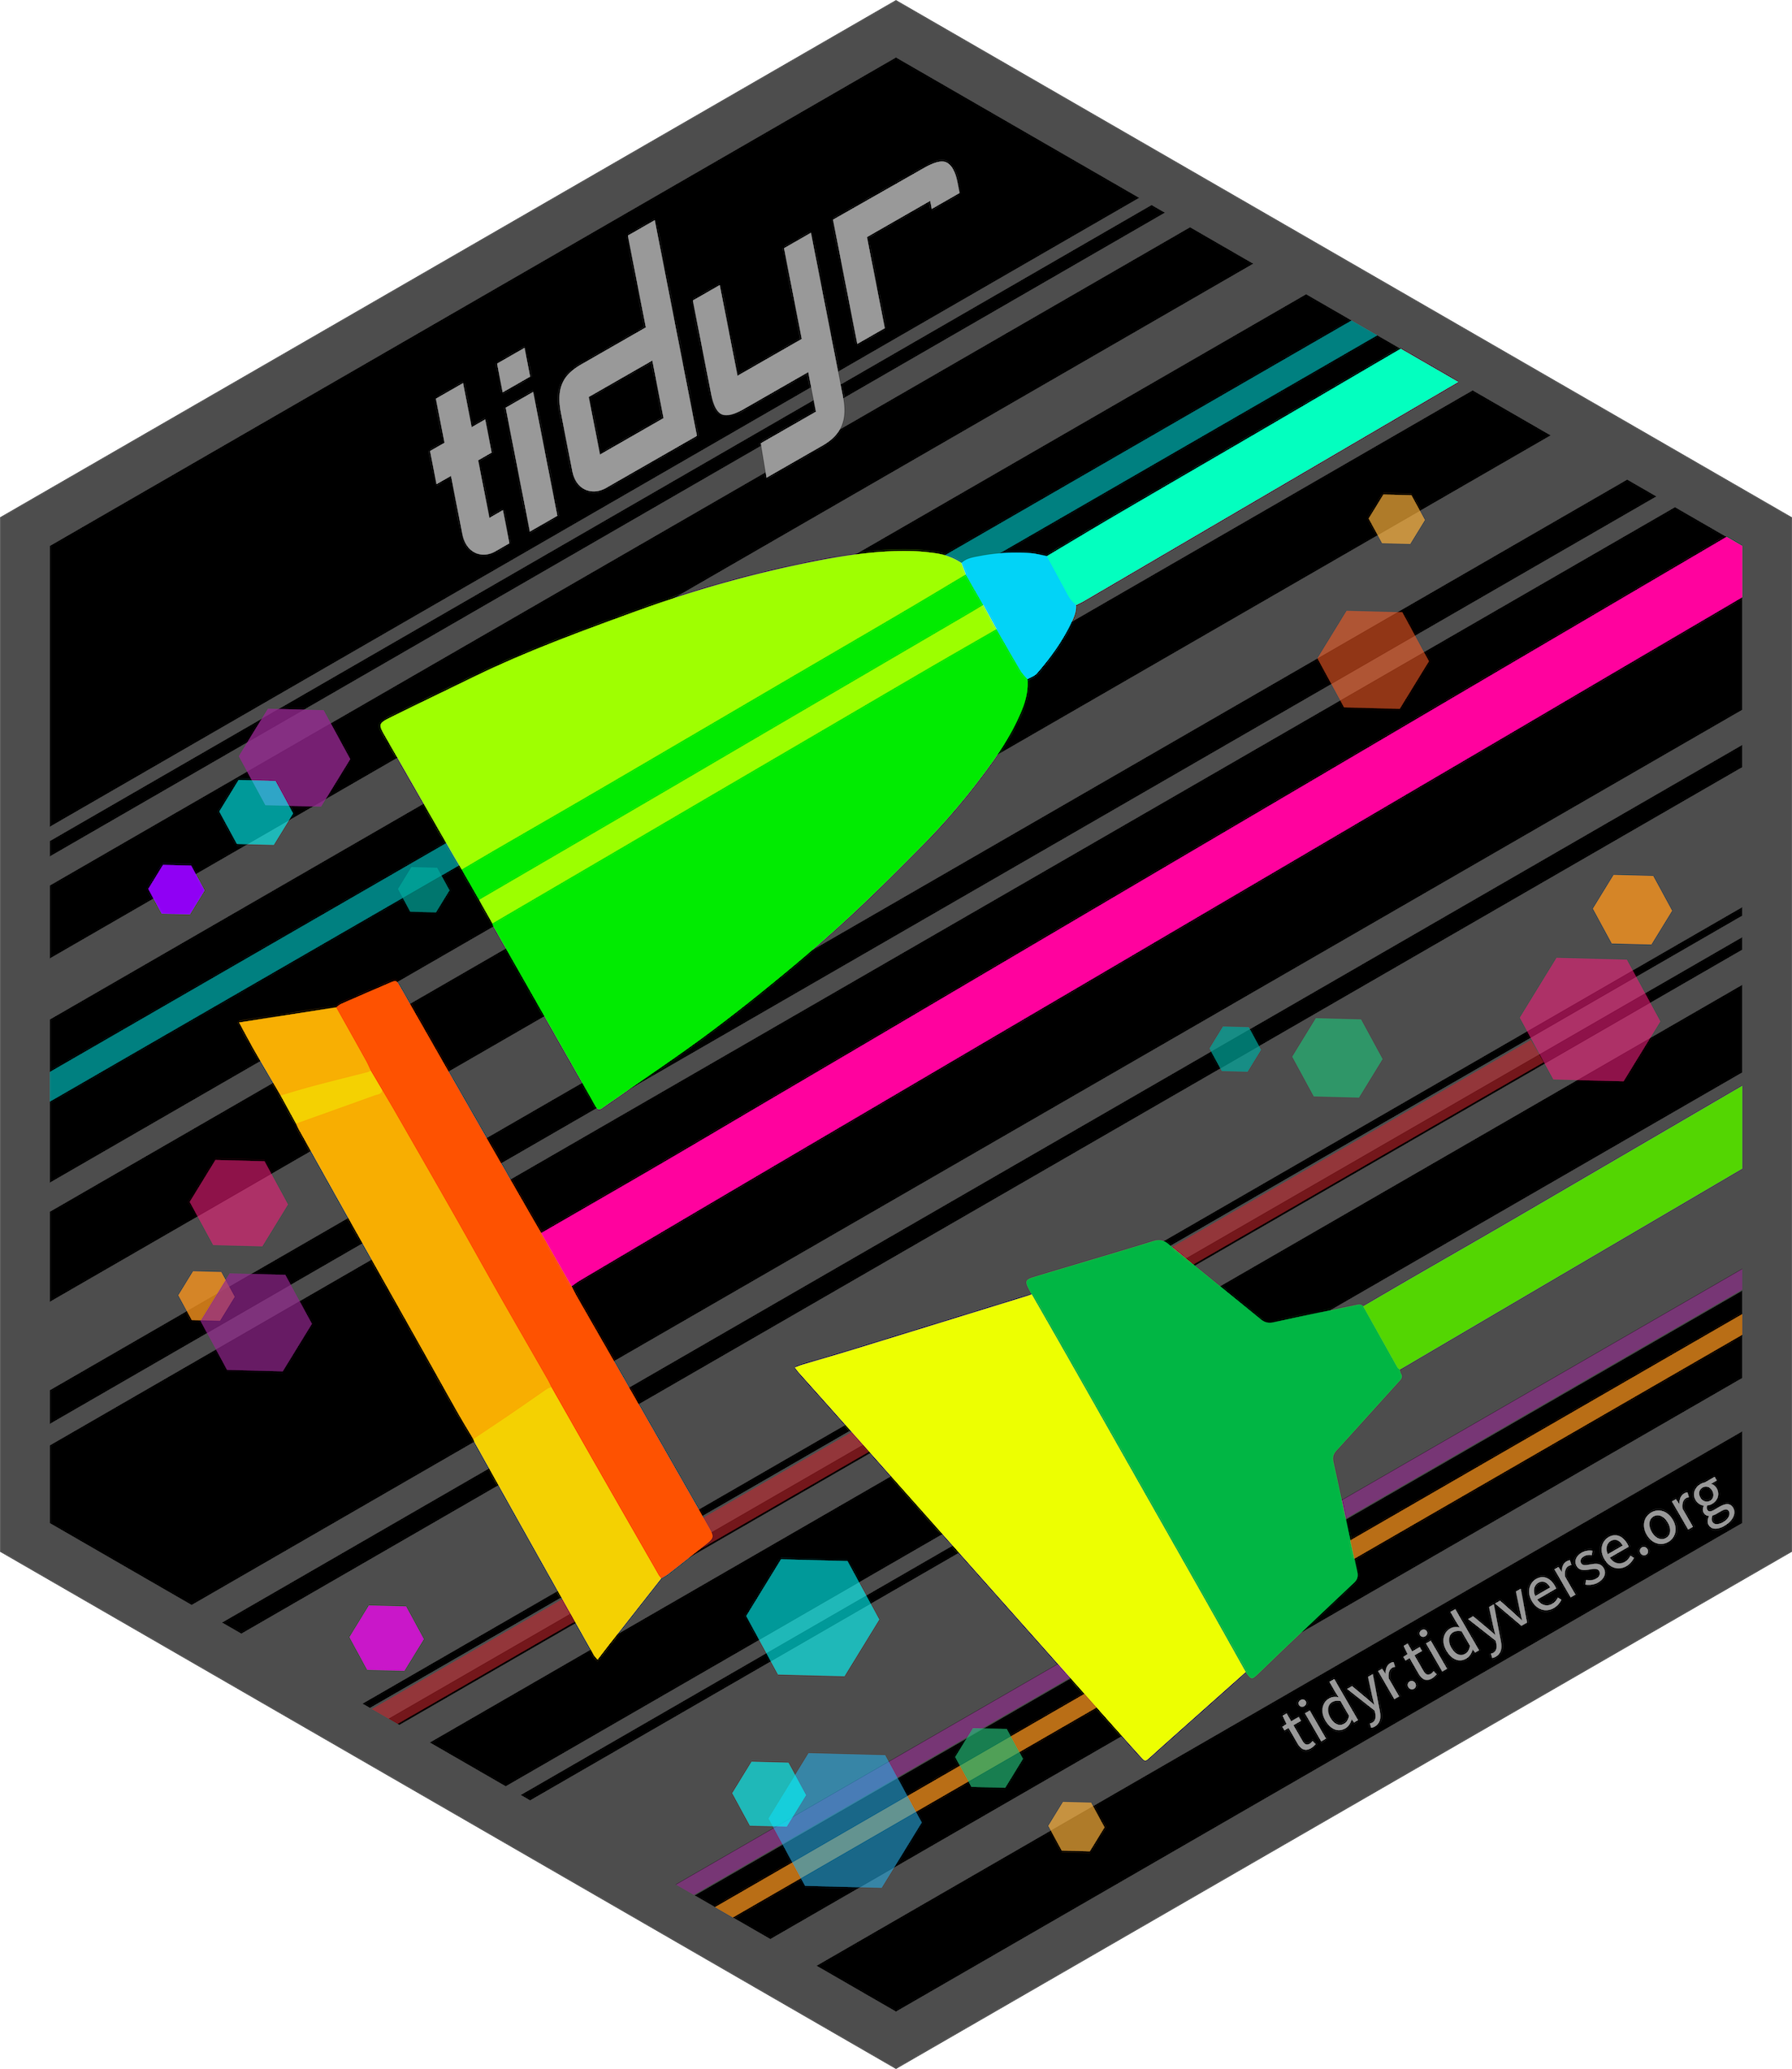 tidyr hex sticker